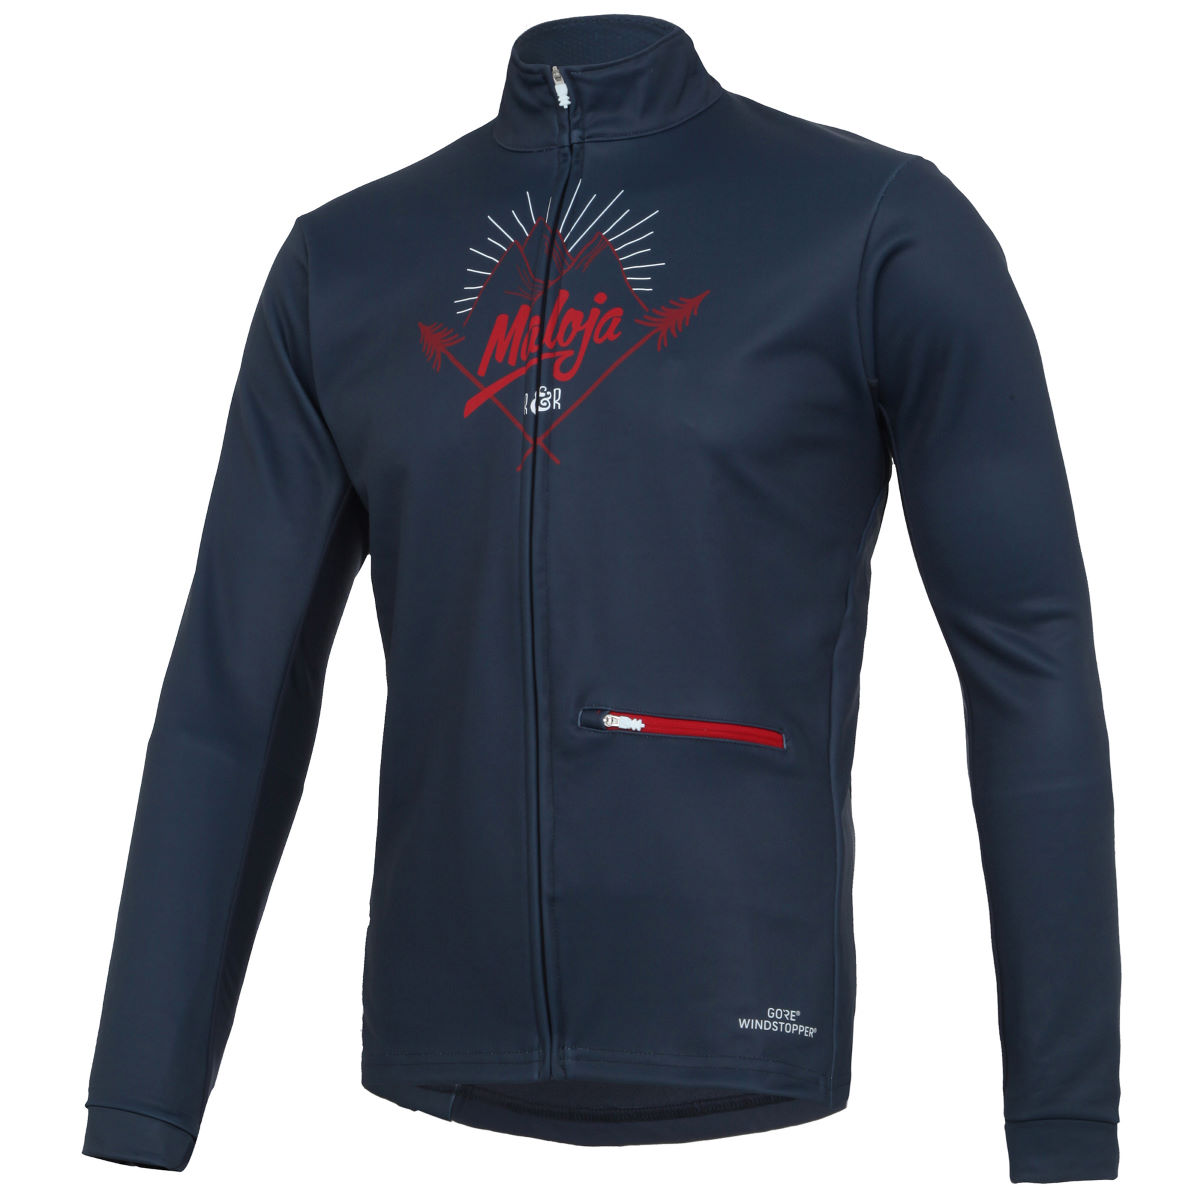 Veste coupe-vent Maloja BurtM. - L Nightfall Coupe-vents vélo